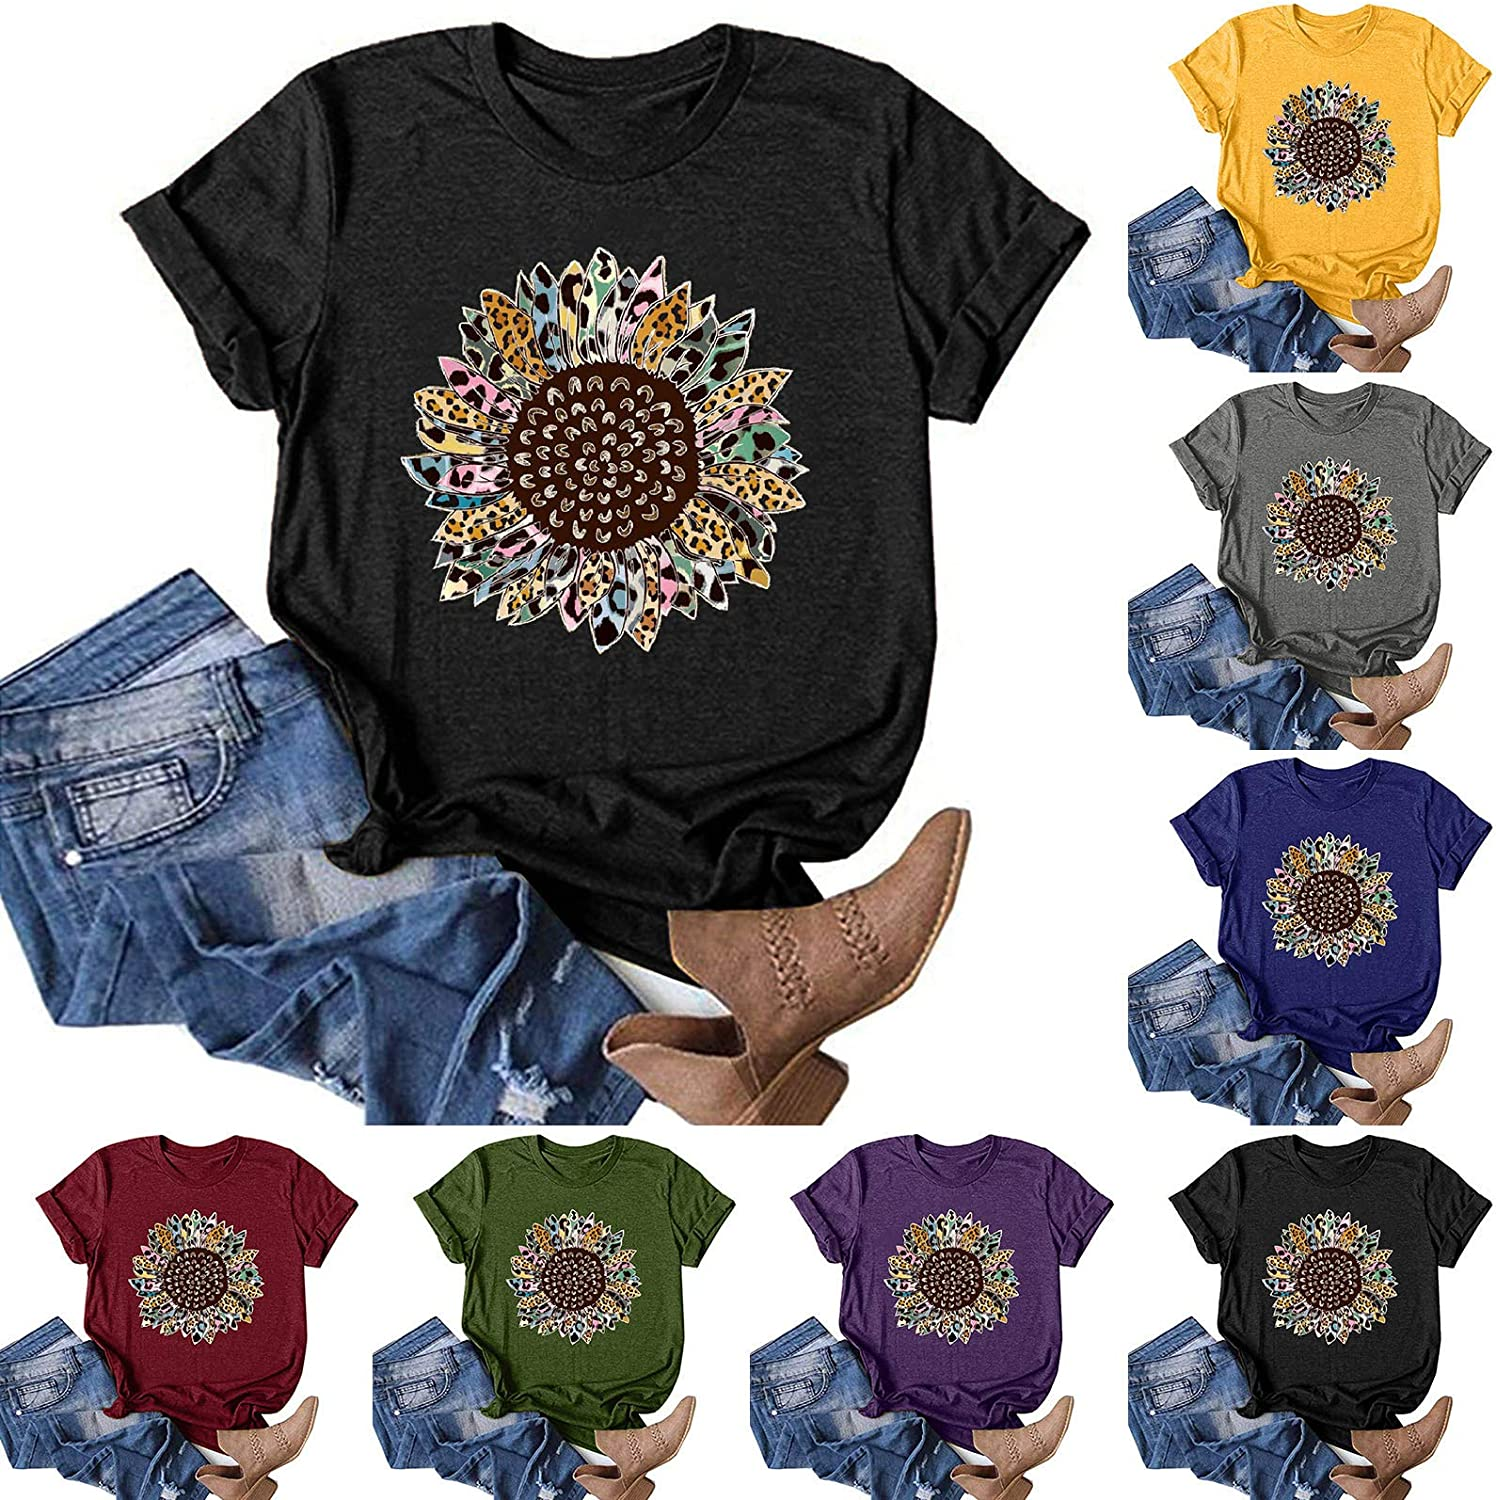 AODONG Summer Tops for Women Trendy, Women's Casual Dandelion Printing Tunic Tees Loose Blouses Funny Graphic T-Shirts